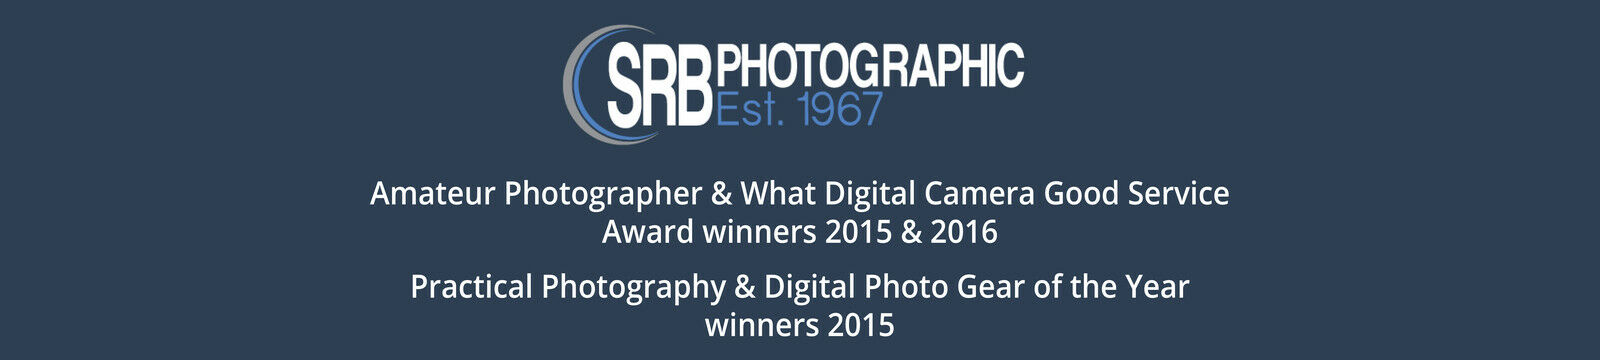 SRB Photographic